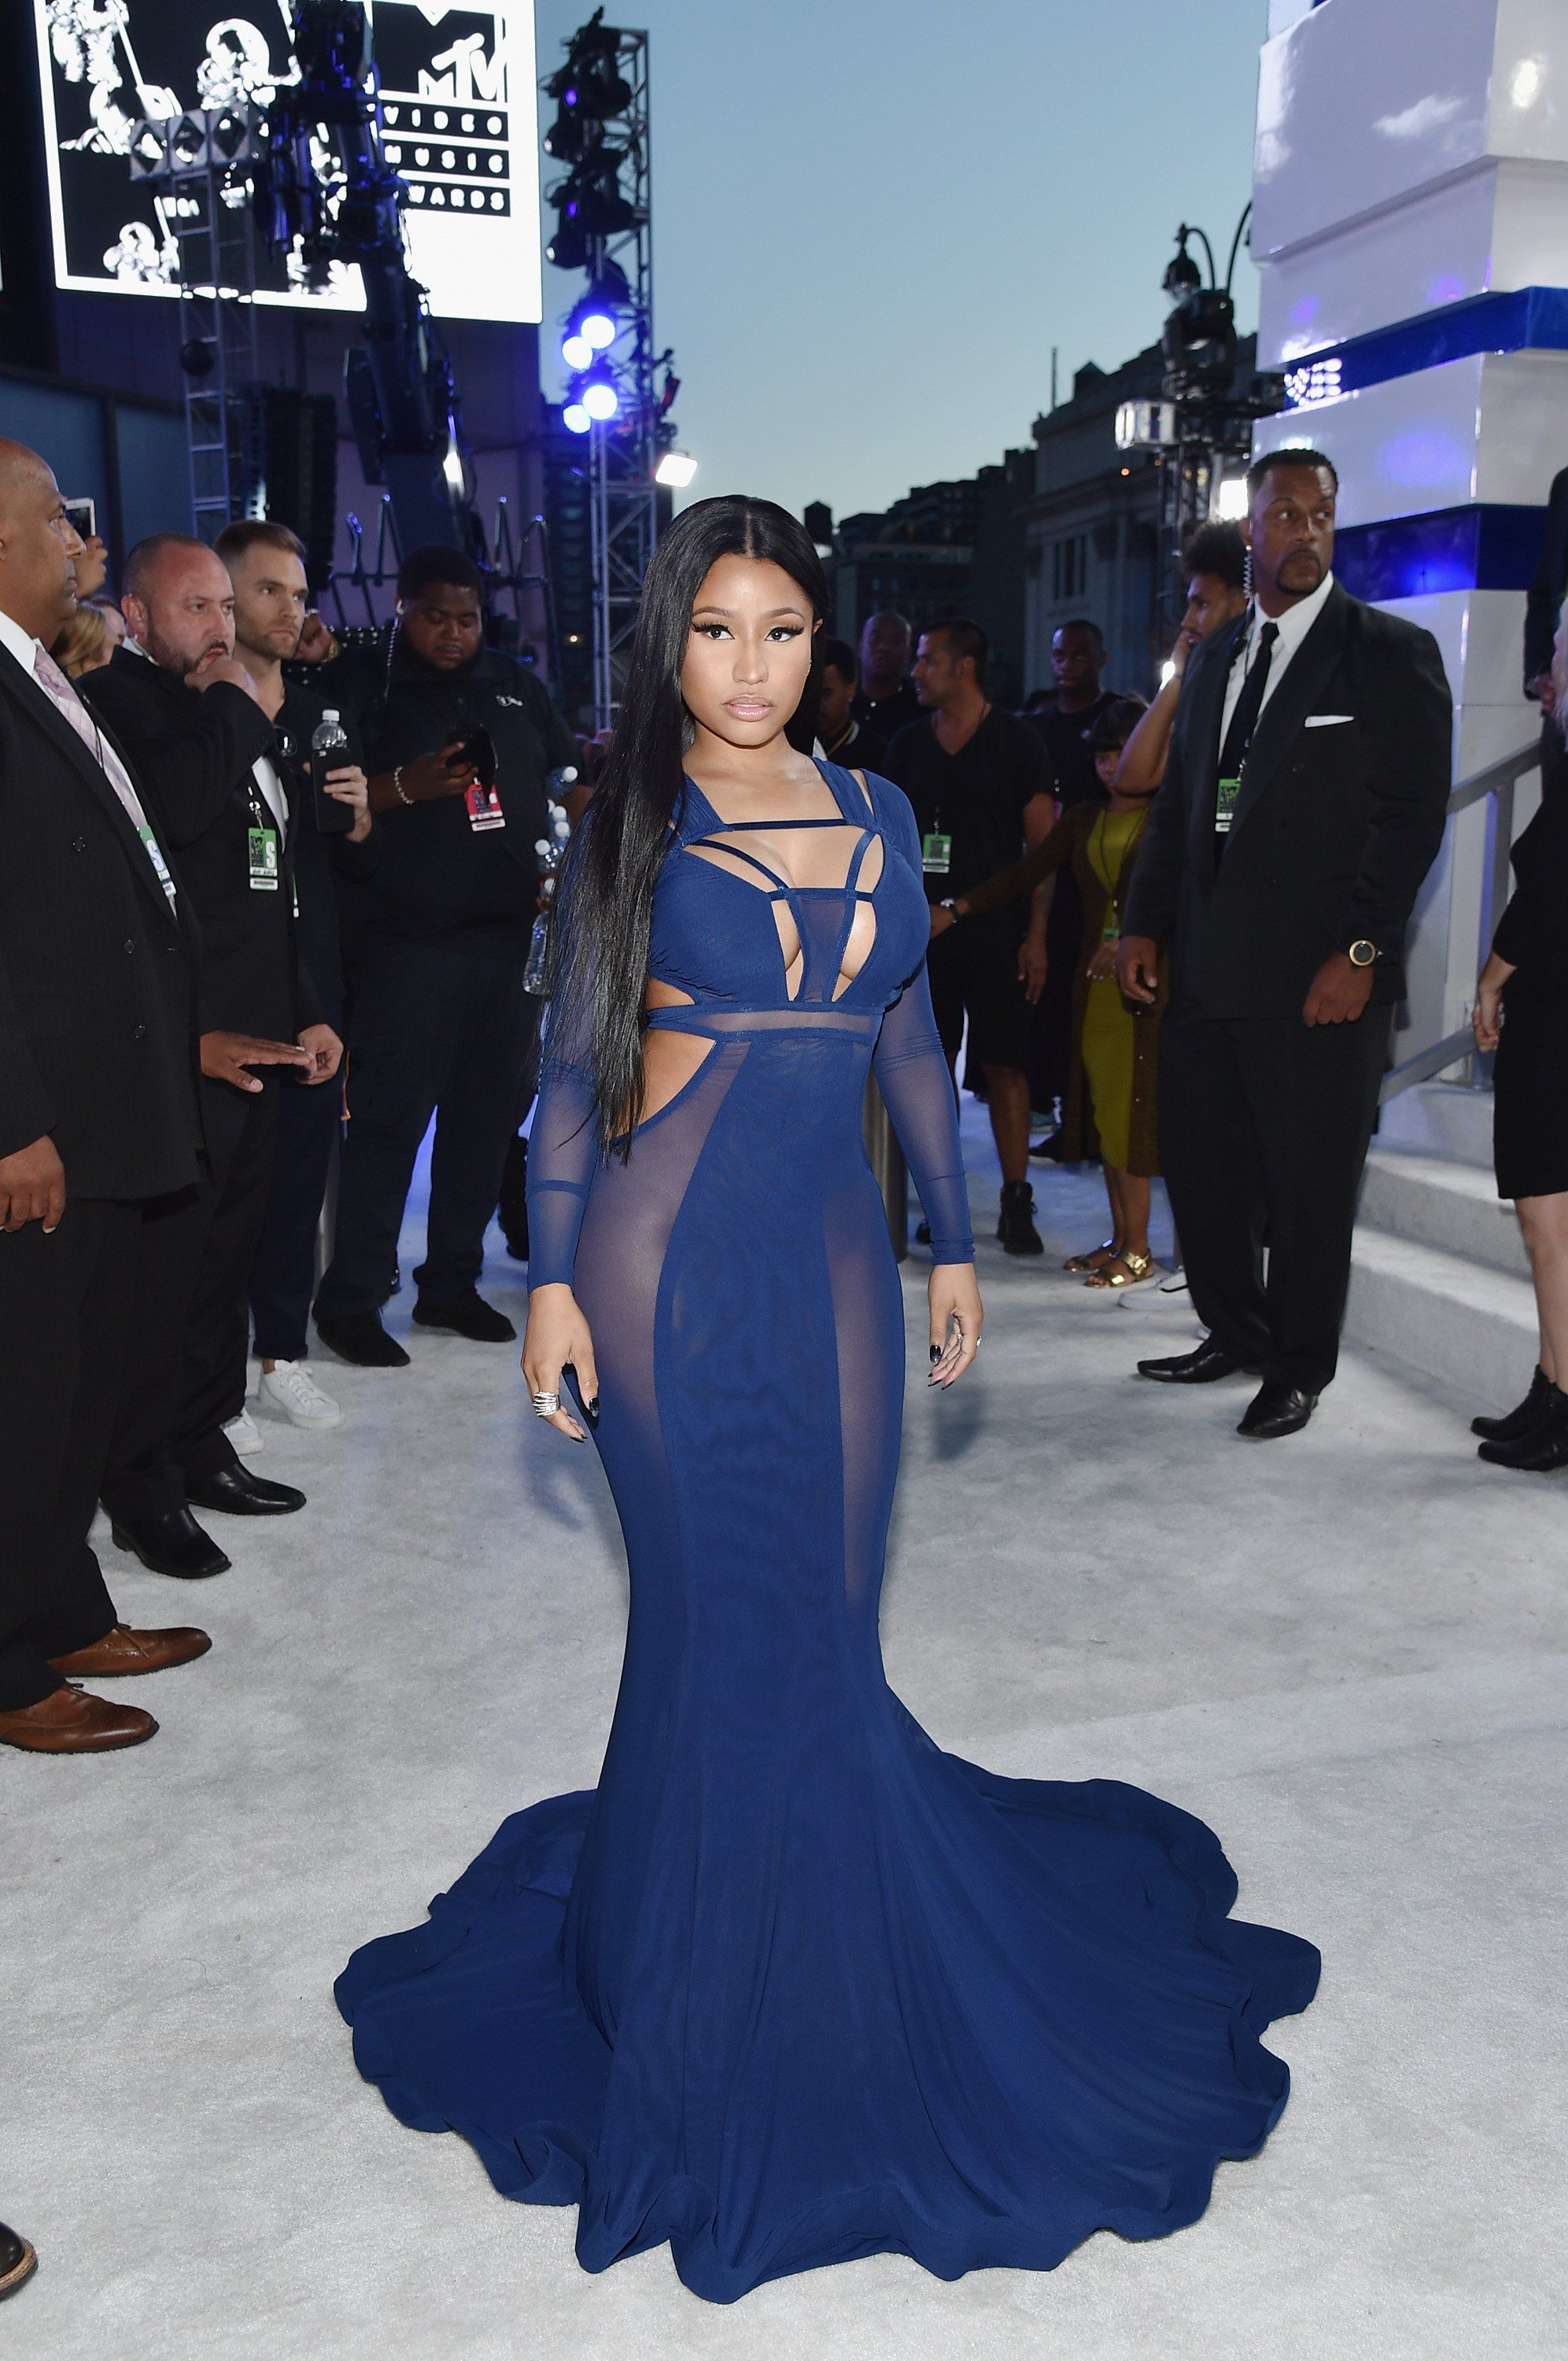 Nicki Minaj | Nicki Minaj | Pinterest | Nicki minaj, Queens and ...